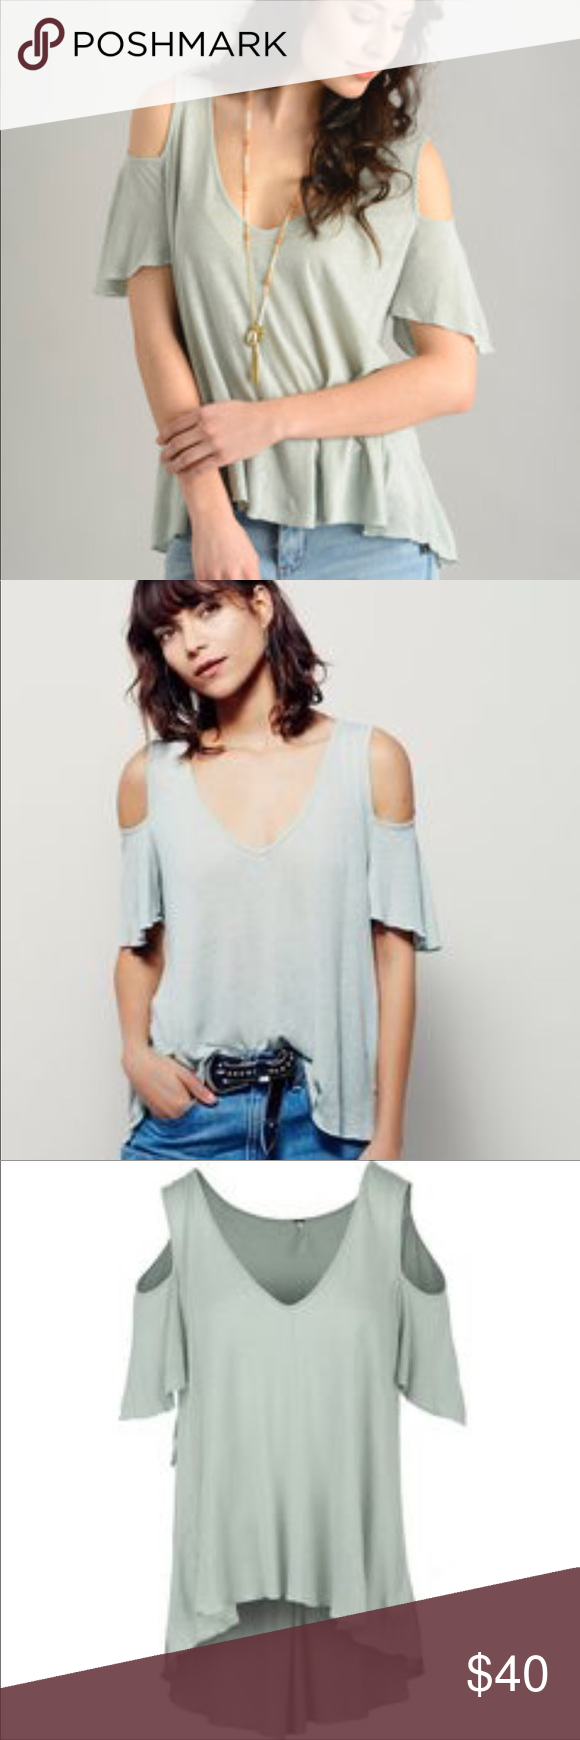 213c618247a79 Free people Bittersweet Cold-Shoulder Tee Size small like new condition. Free  people open shoulder top. Light weight top perfect for layering.